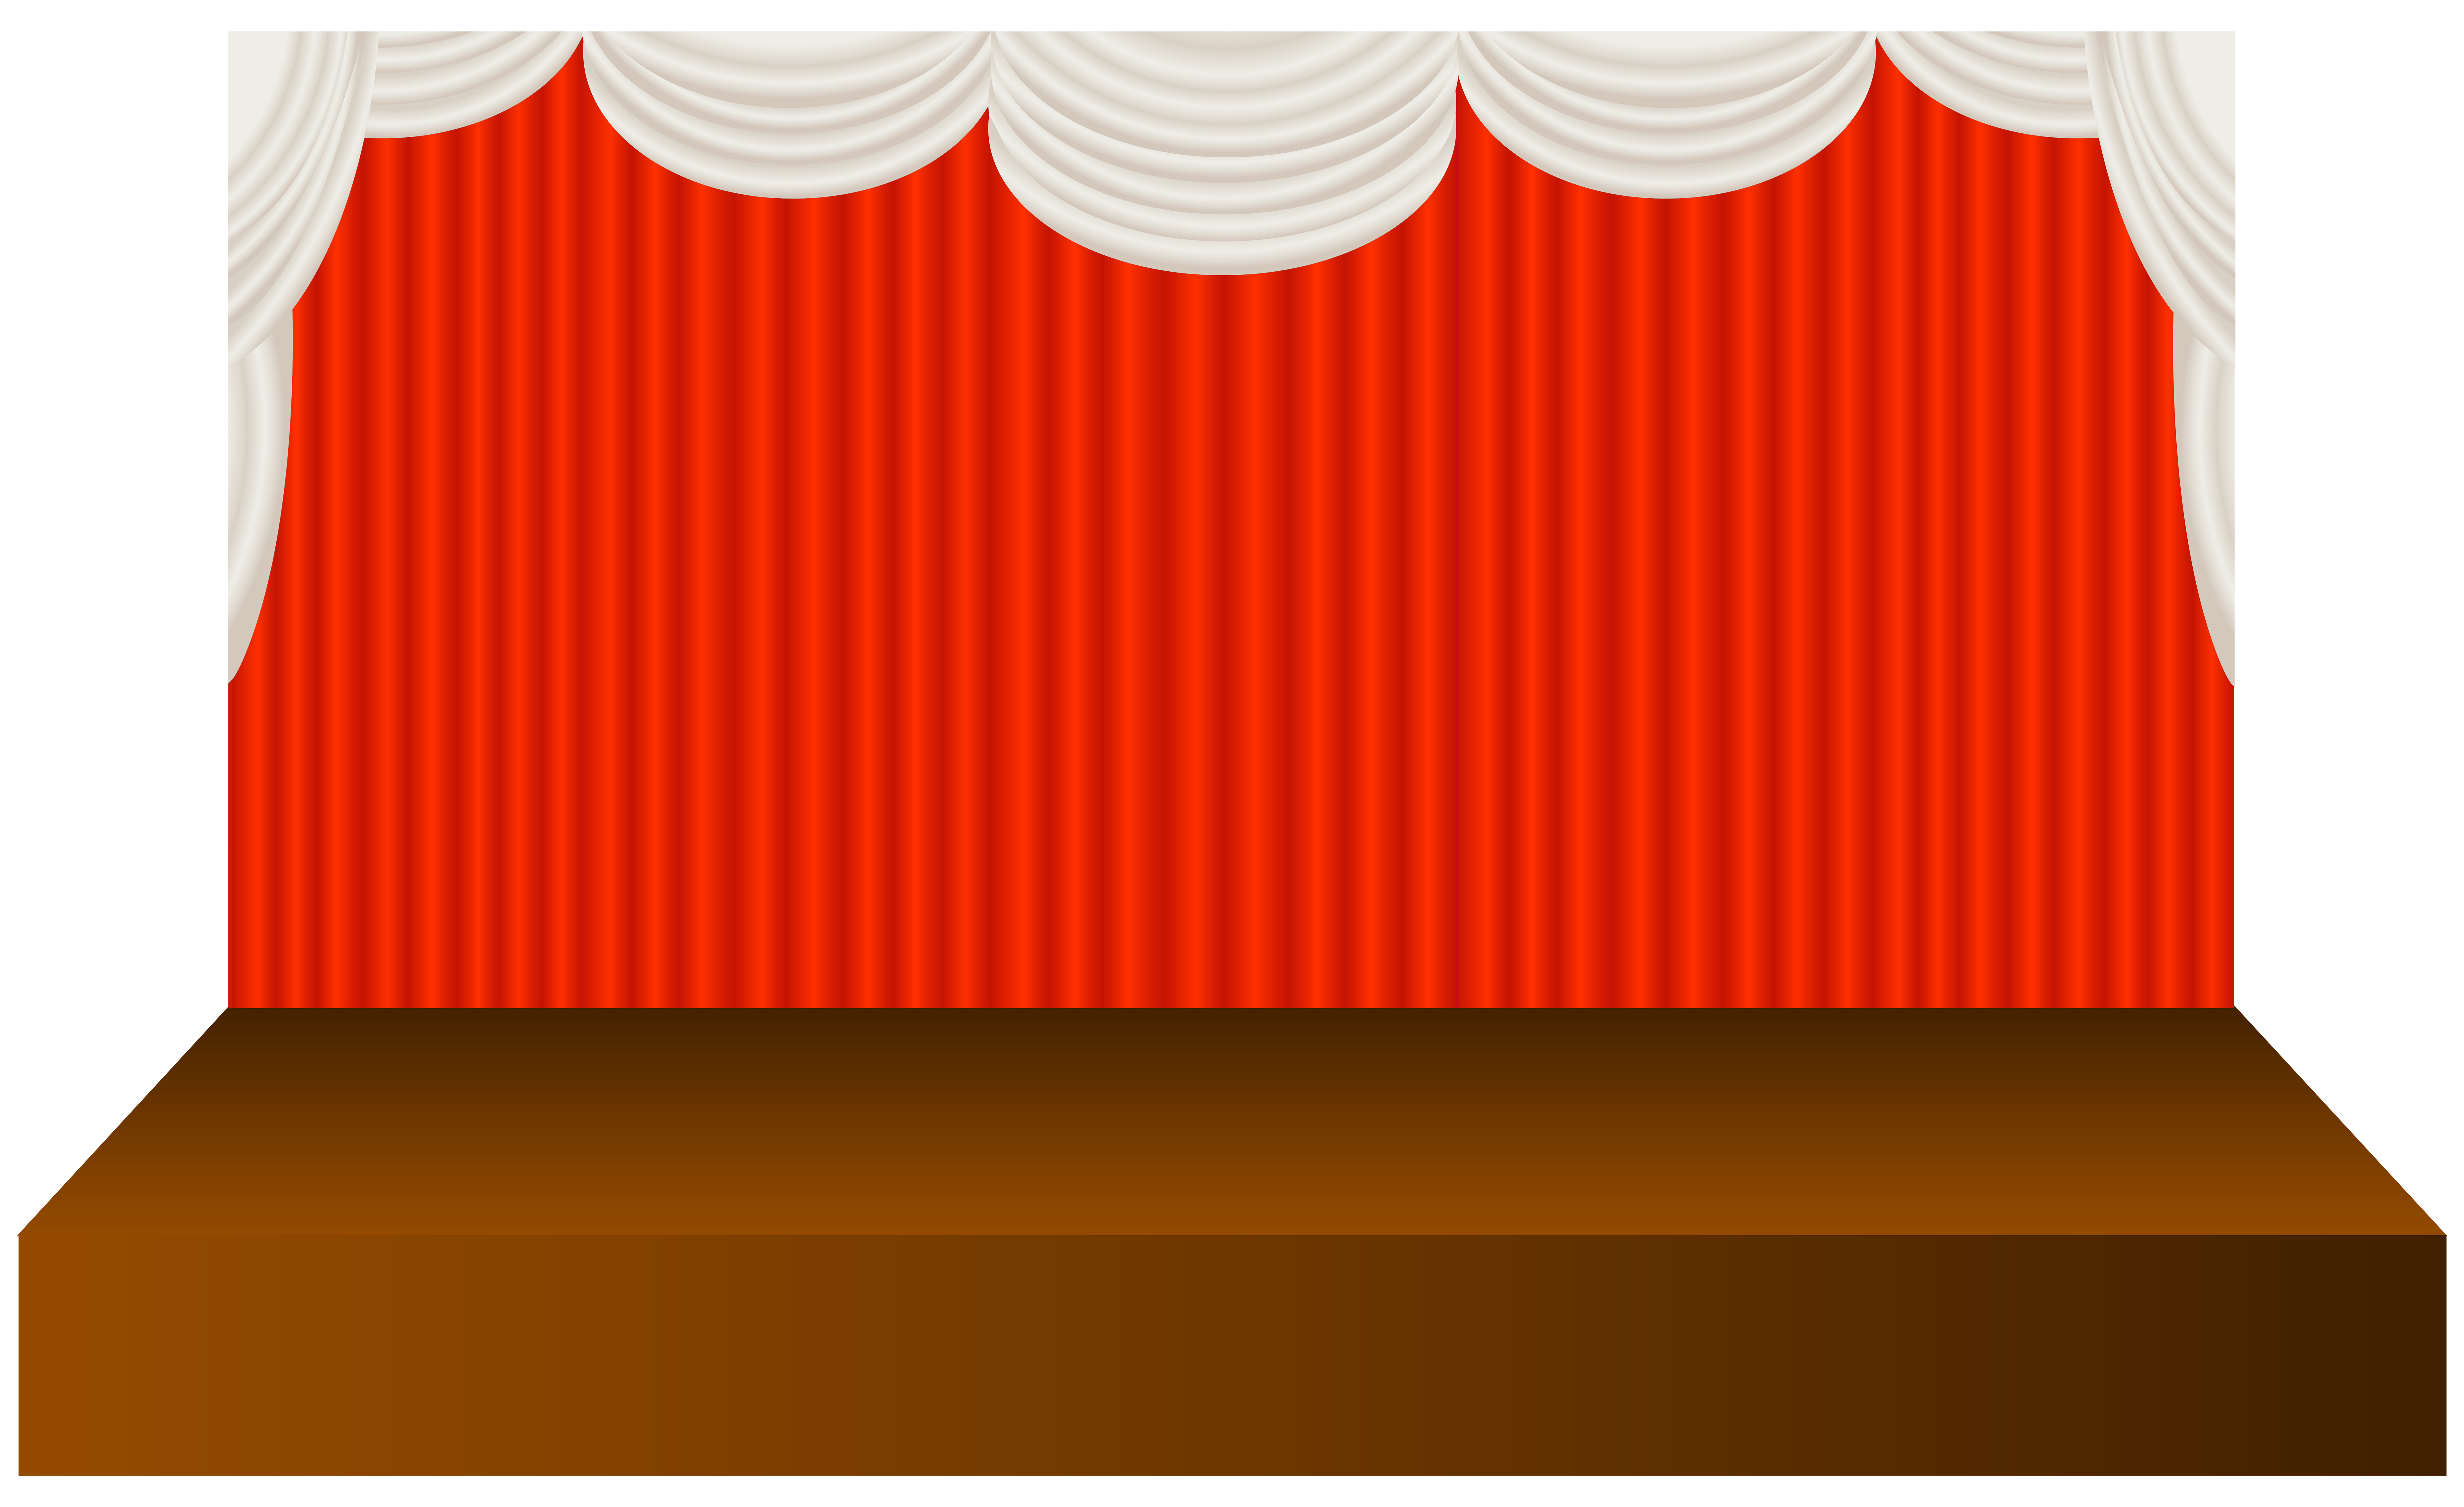 Stage star with lights clipart graphic freeuse download Stage PNG Transparent Clip Art Image | Gallery Yopriceville - High ... graphic freeuse download